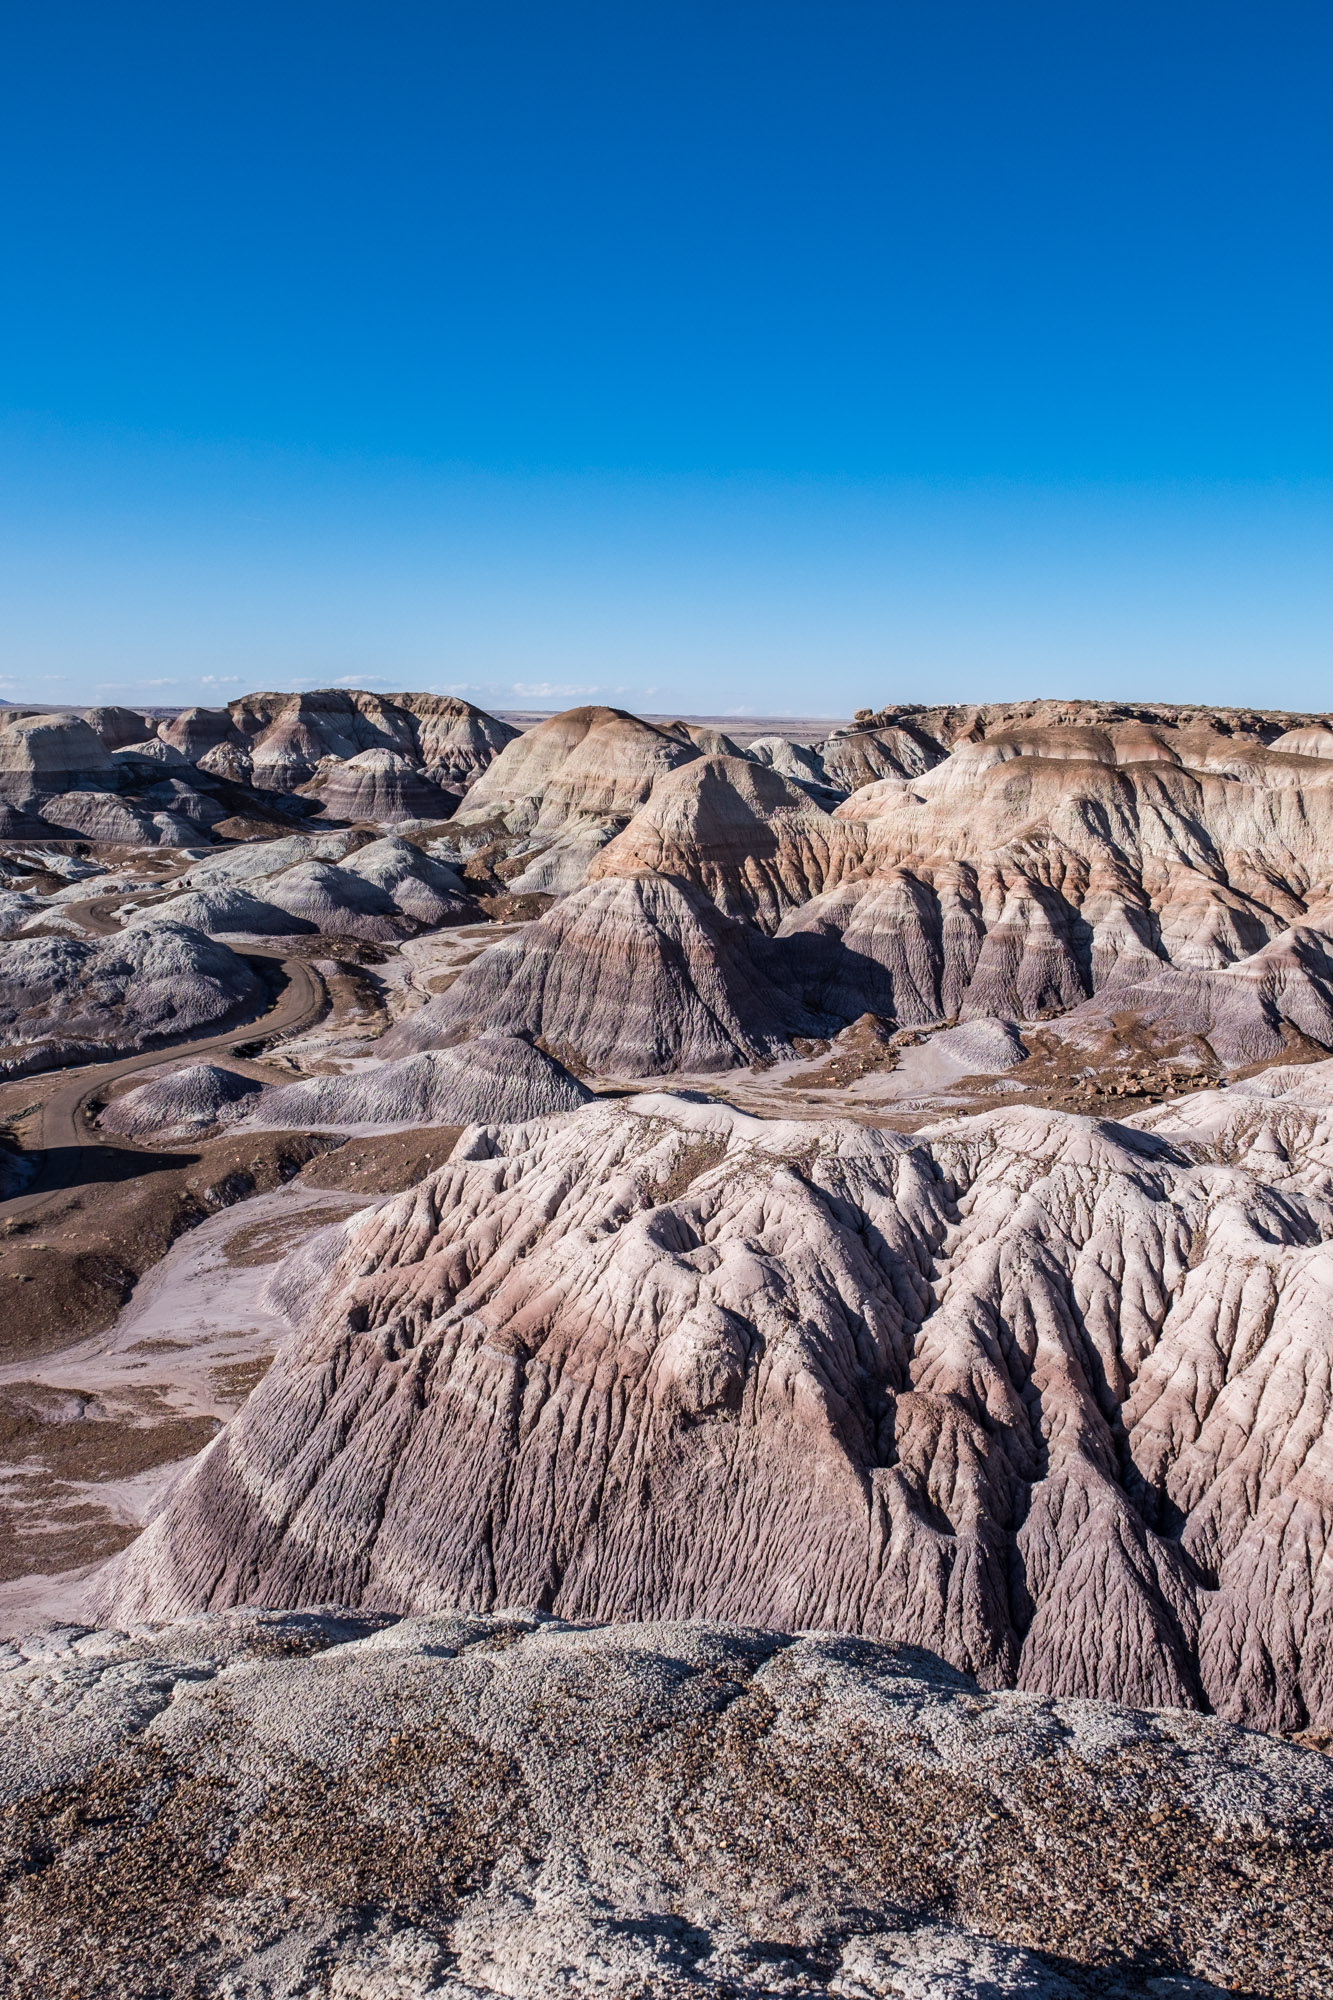 What strange earthly processes collided to make such a unique place?